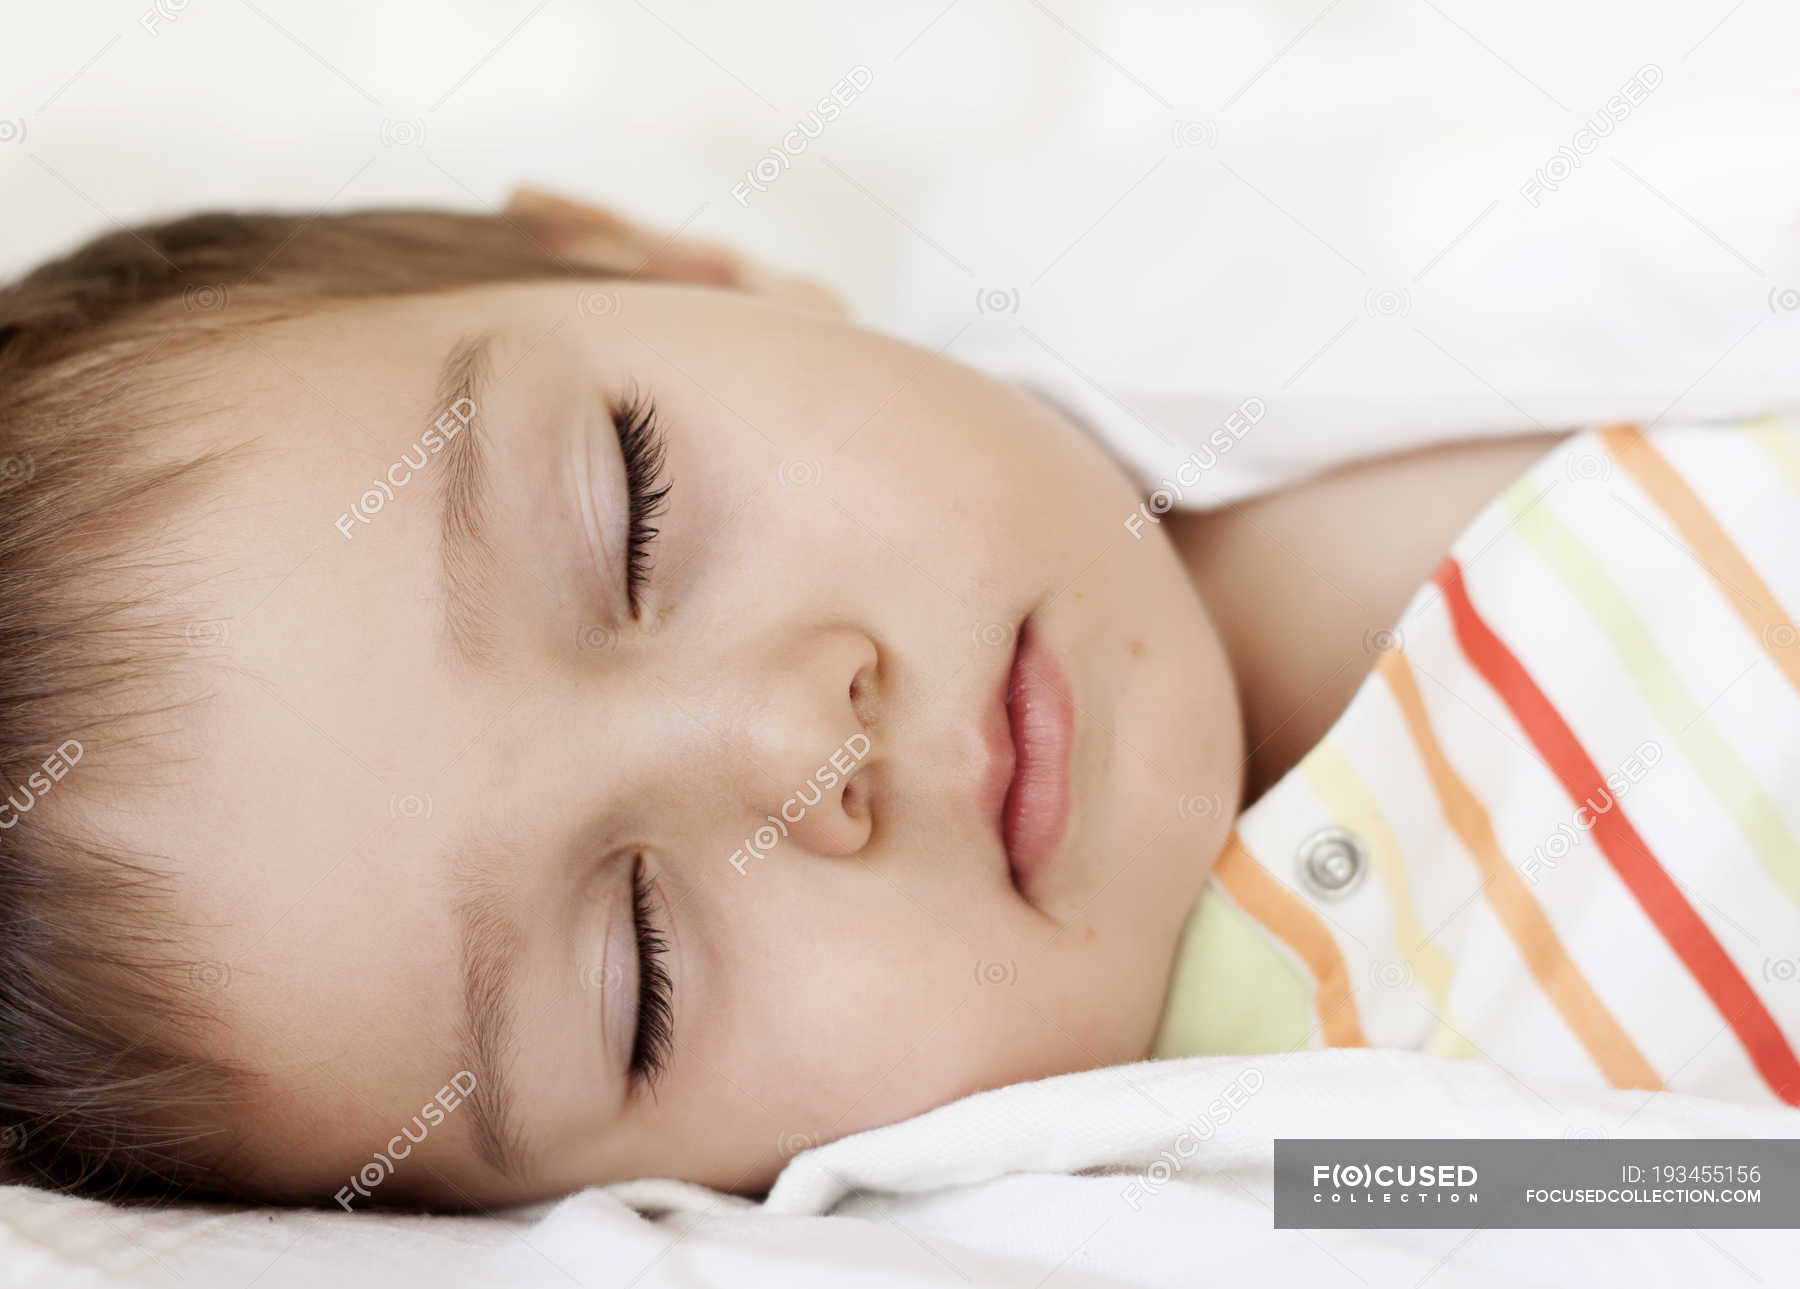 Close Up Of Sleeping Baby Girl In Bed Innocence Detail Stock Photo 193455156